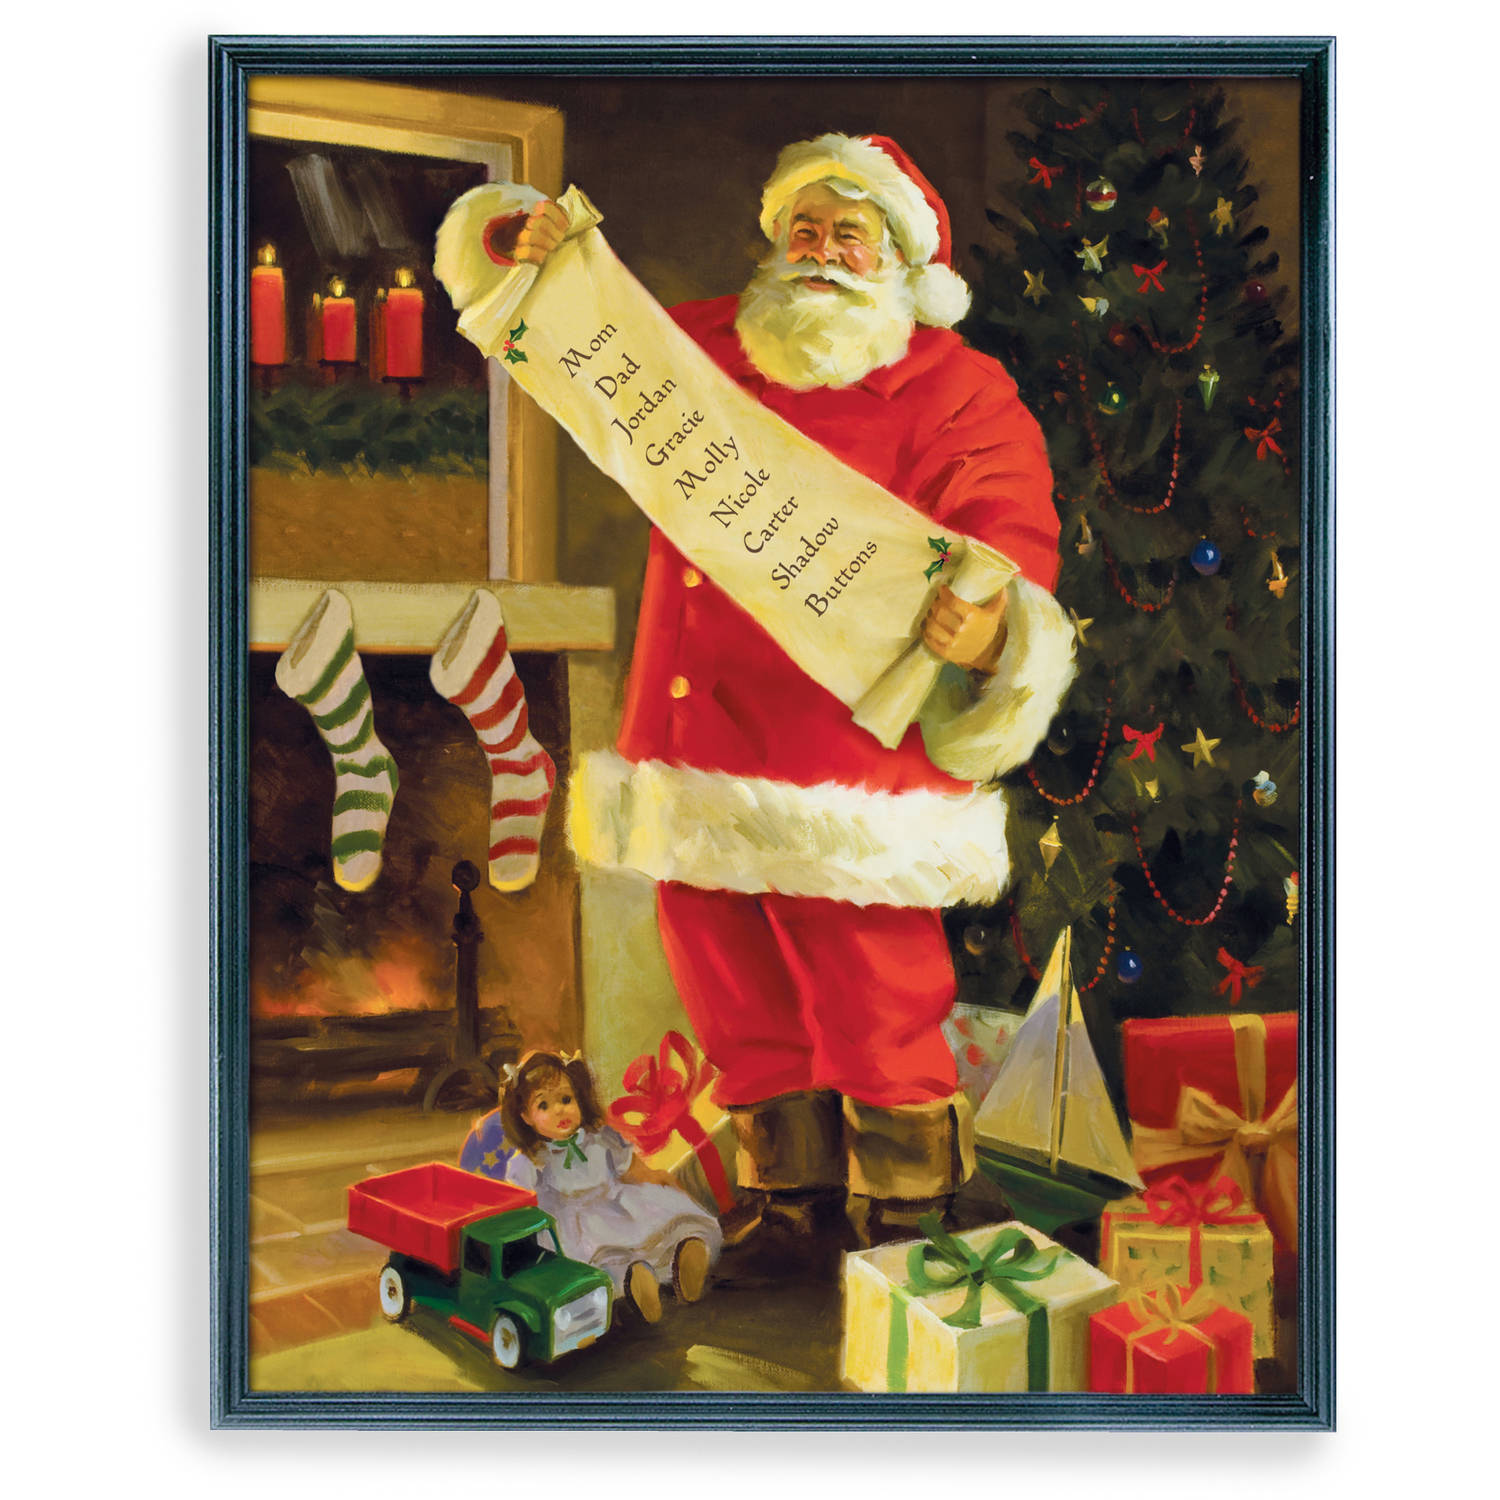 Personalized Framed Santa's List Canvas Framed Art, Available in Multiple Sizes